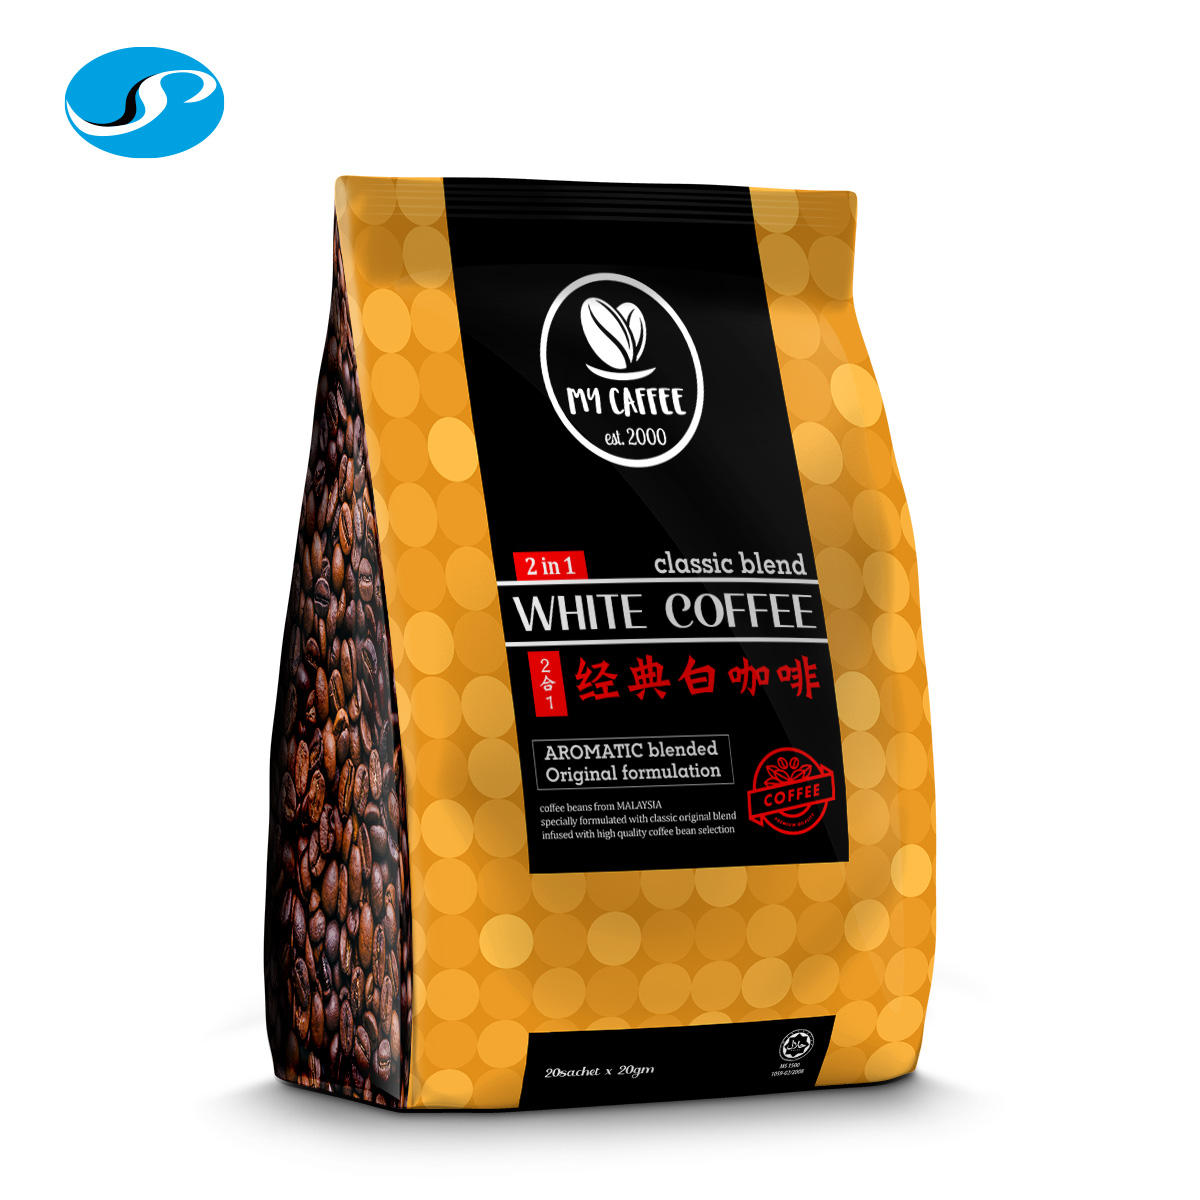 My Caffee 2 in 1 Classic Blend White Coffee with Arabica & Robusta Coffee Beans from OEM ODM OFM Supplier Manufacturer Malaysia